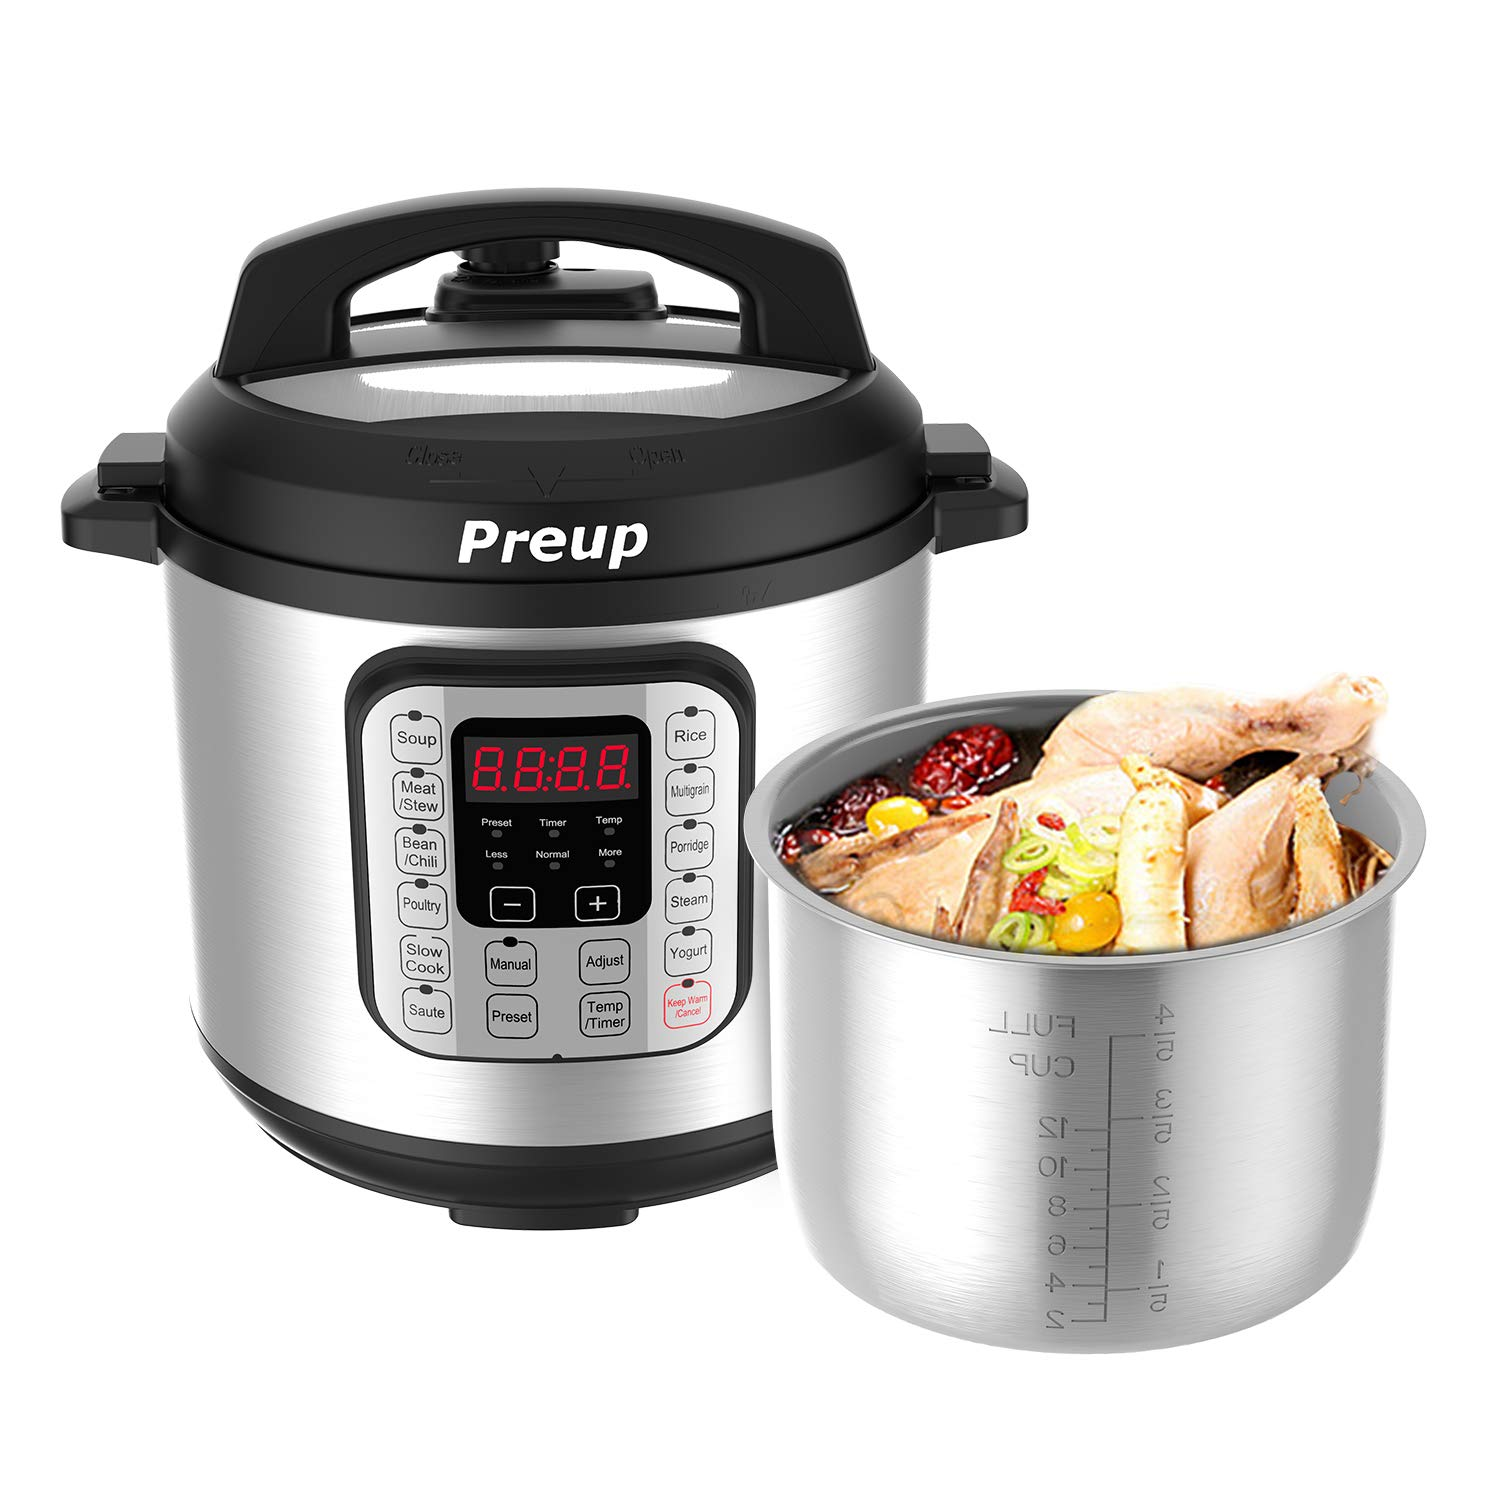 PREUP Electric Pressure Cooker, 6 Quart 7-in-1 Multi-Use Programmable Slow Cooker, Rice Cooker, Steamer, Sauté, Yogurt Maker, Hot Pot and Warmer, Stainless Steel